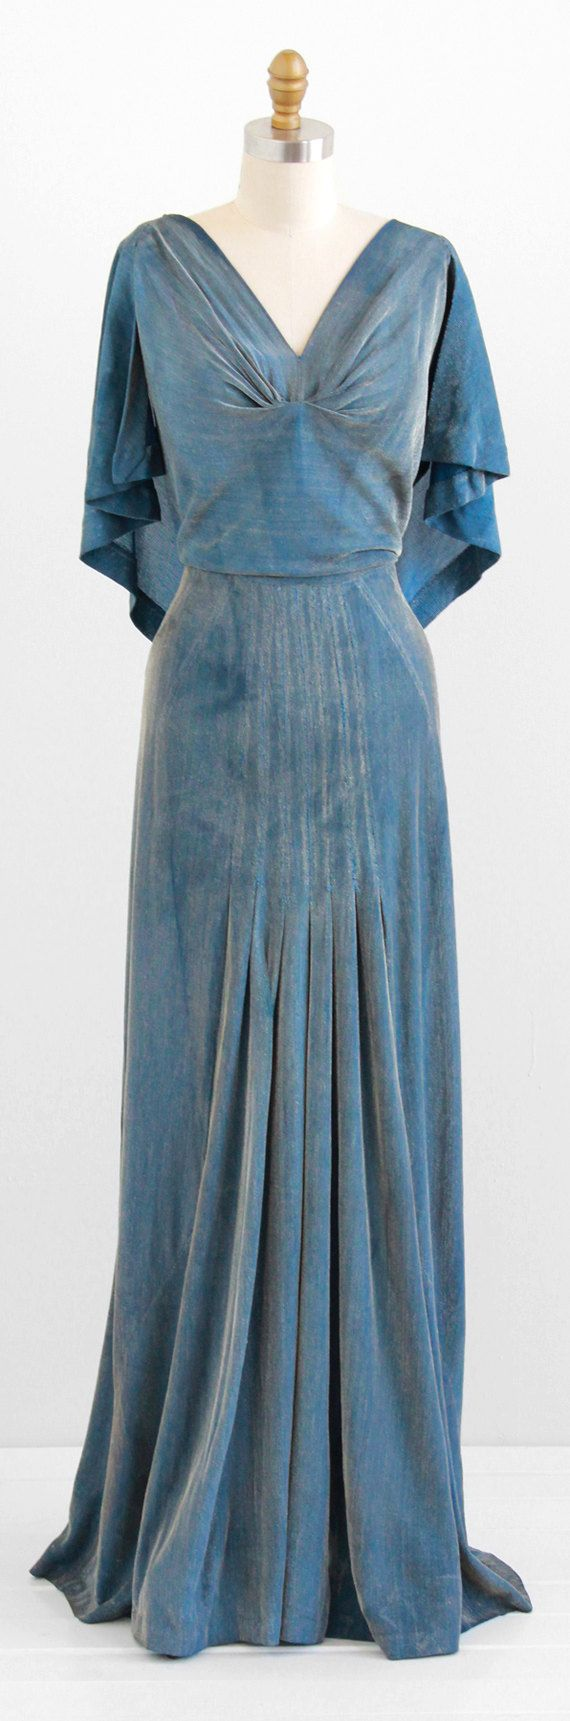 vintage 1930s blue + silver real metal lamé evening gown | art deco fashion